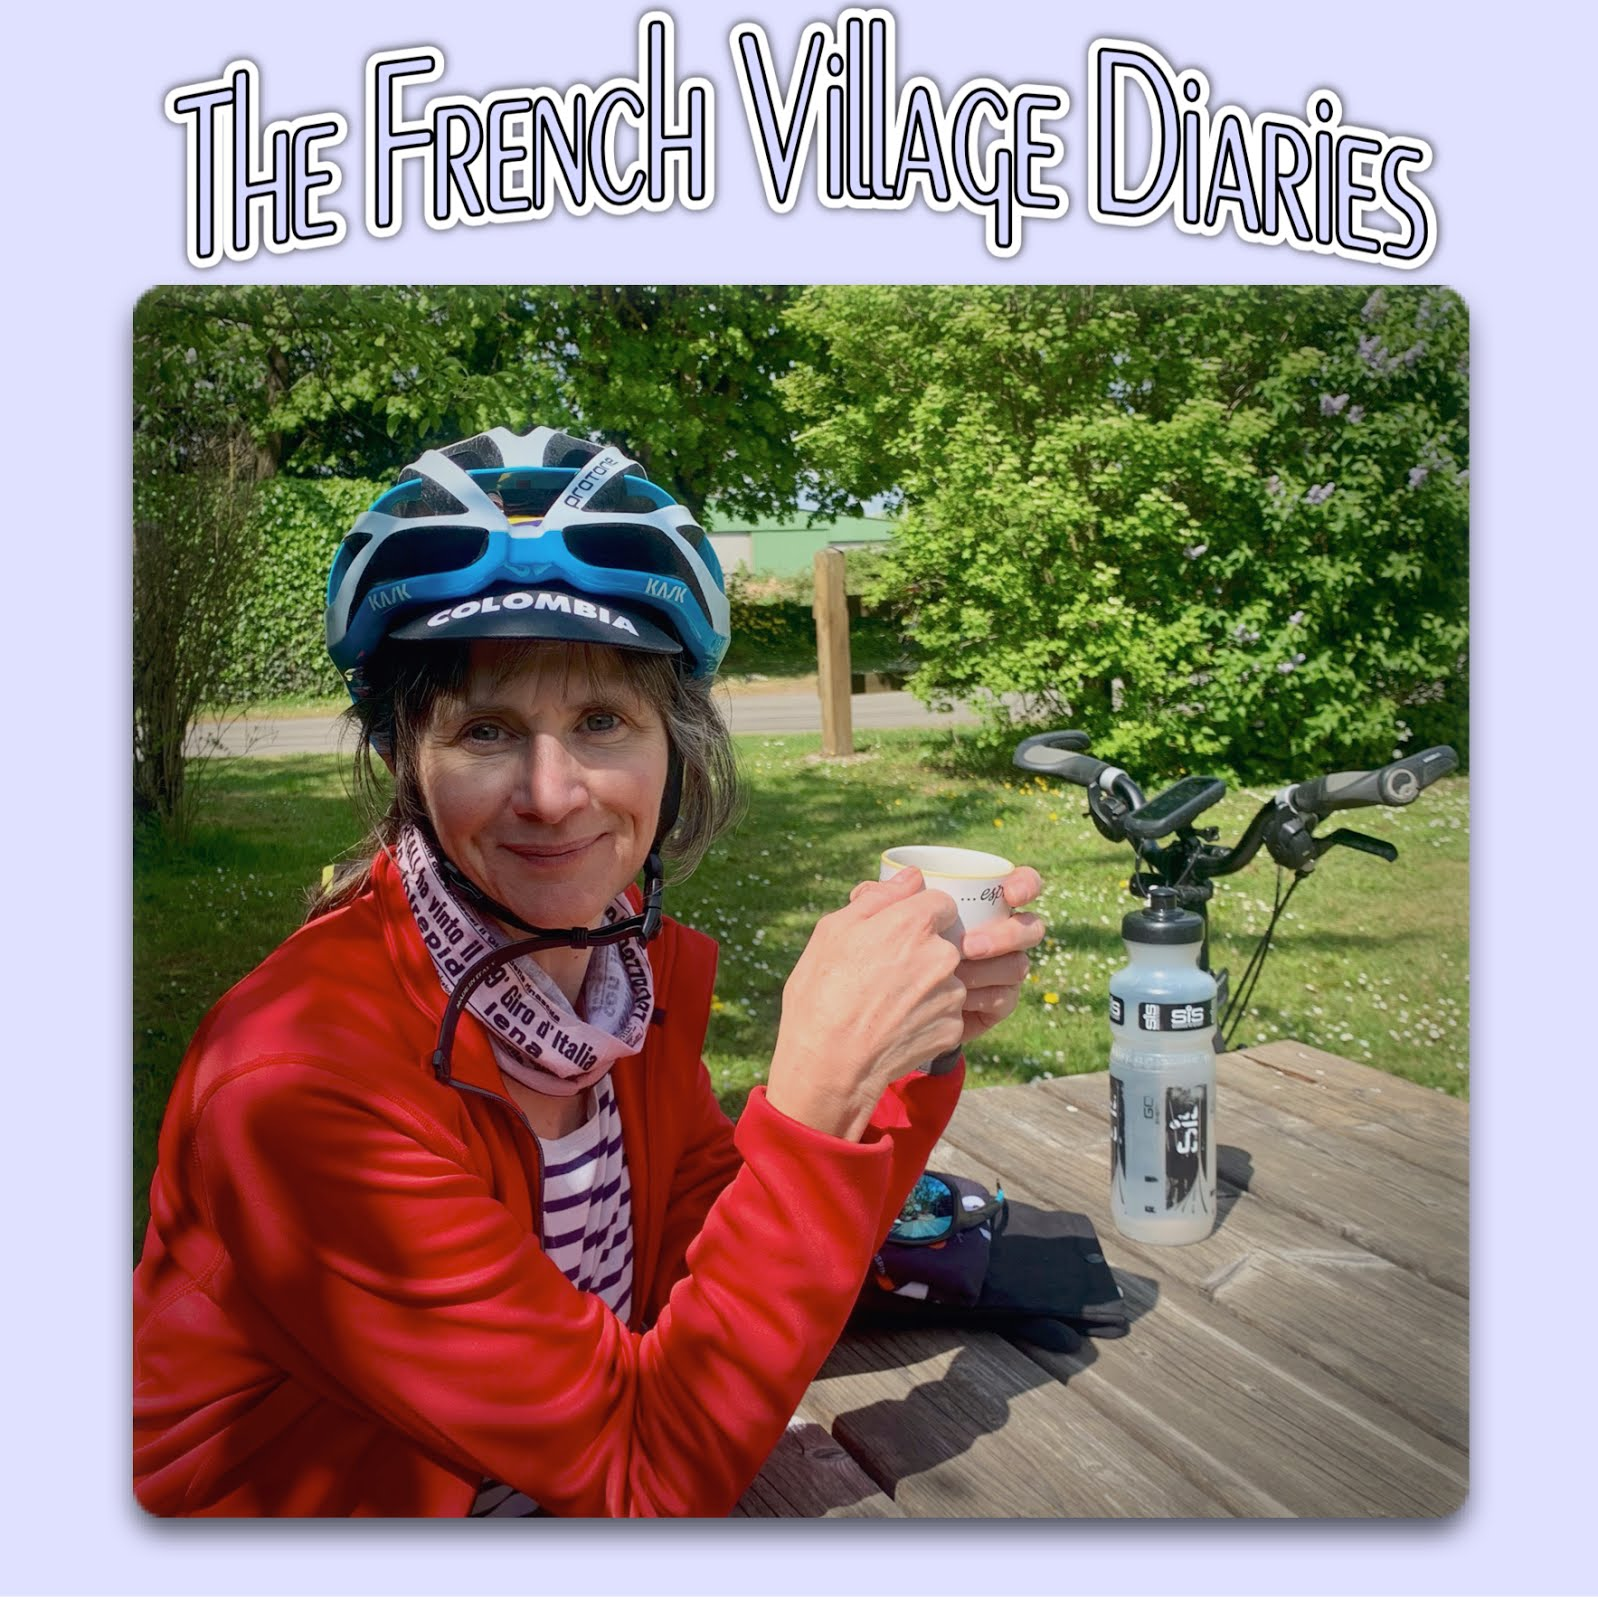 Welcome to The French Village Diaries